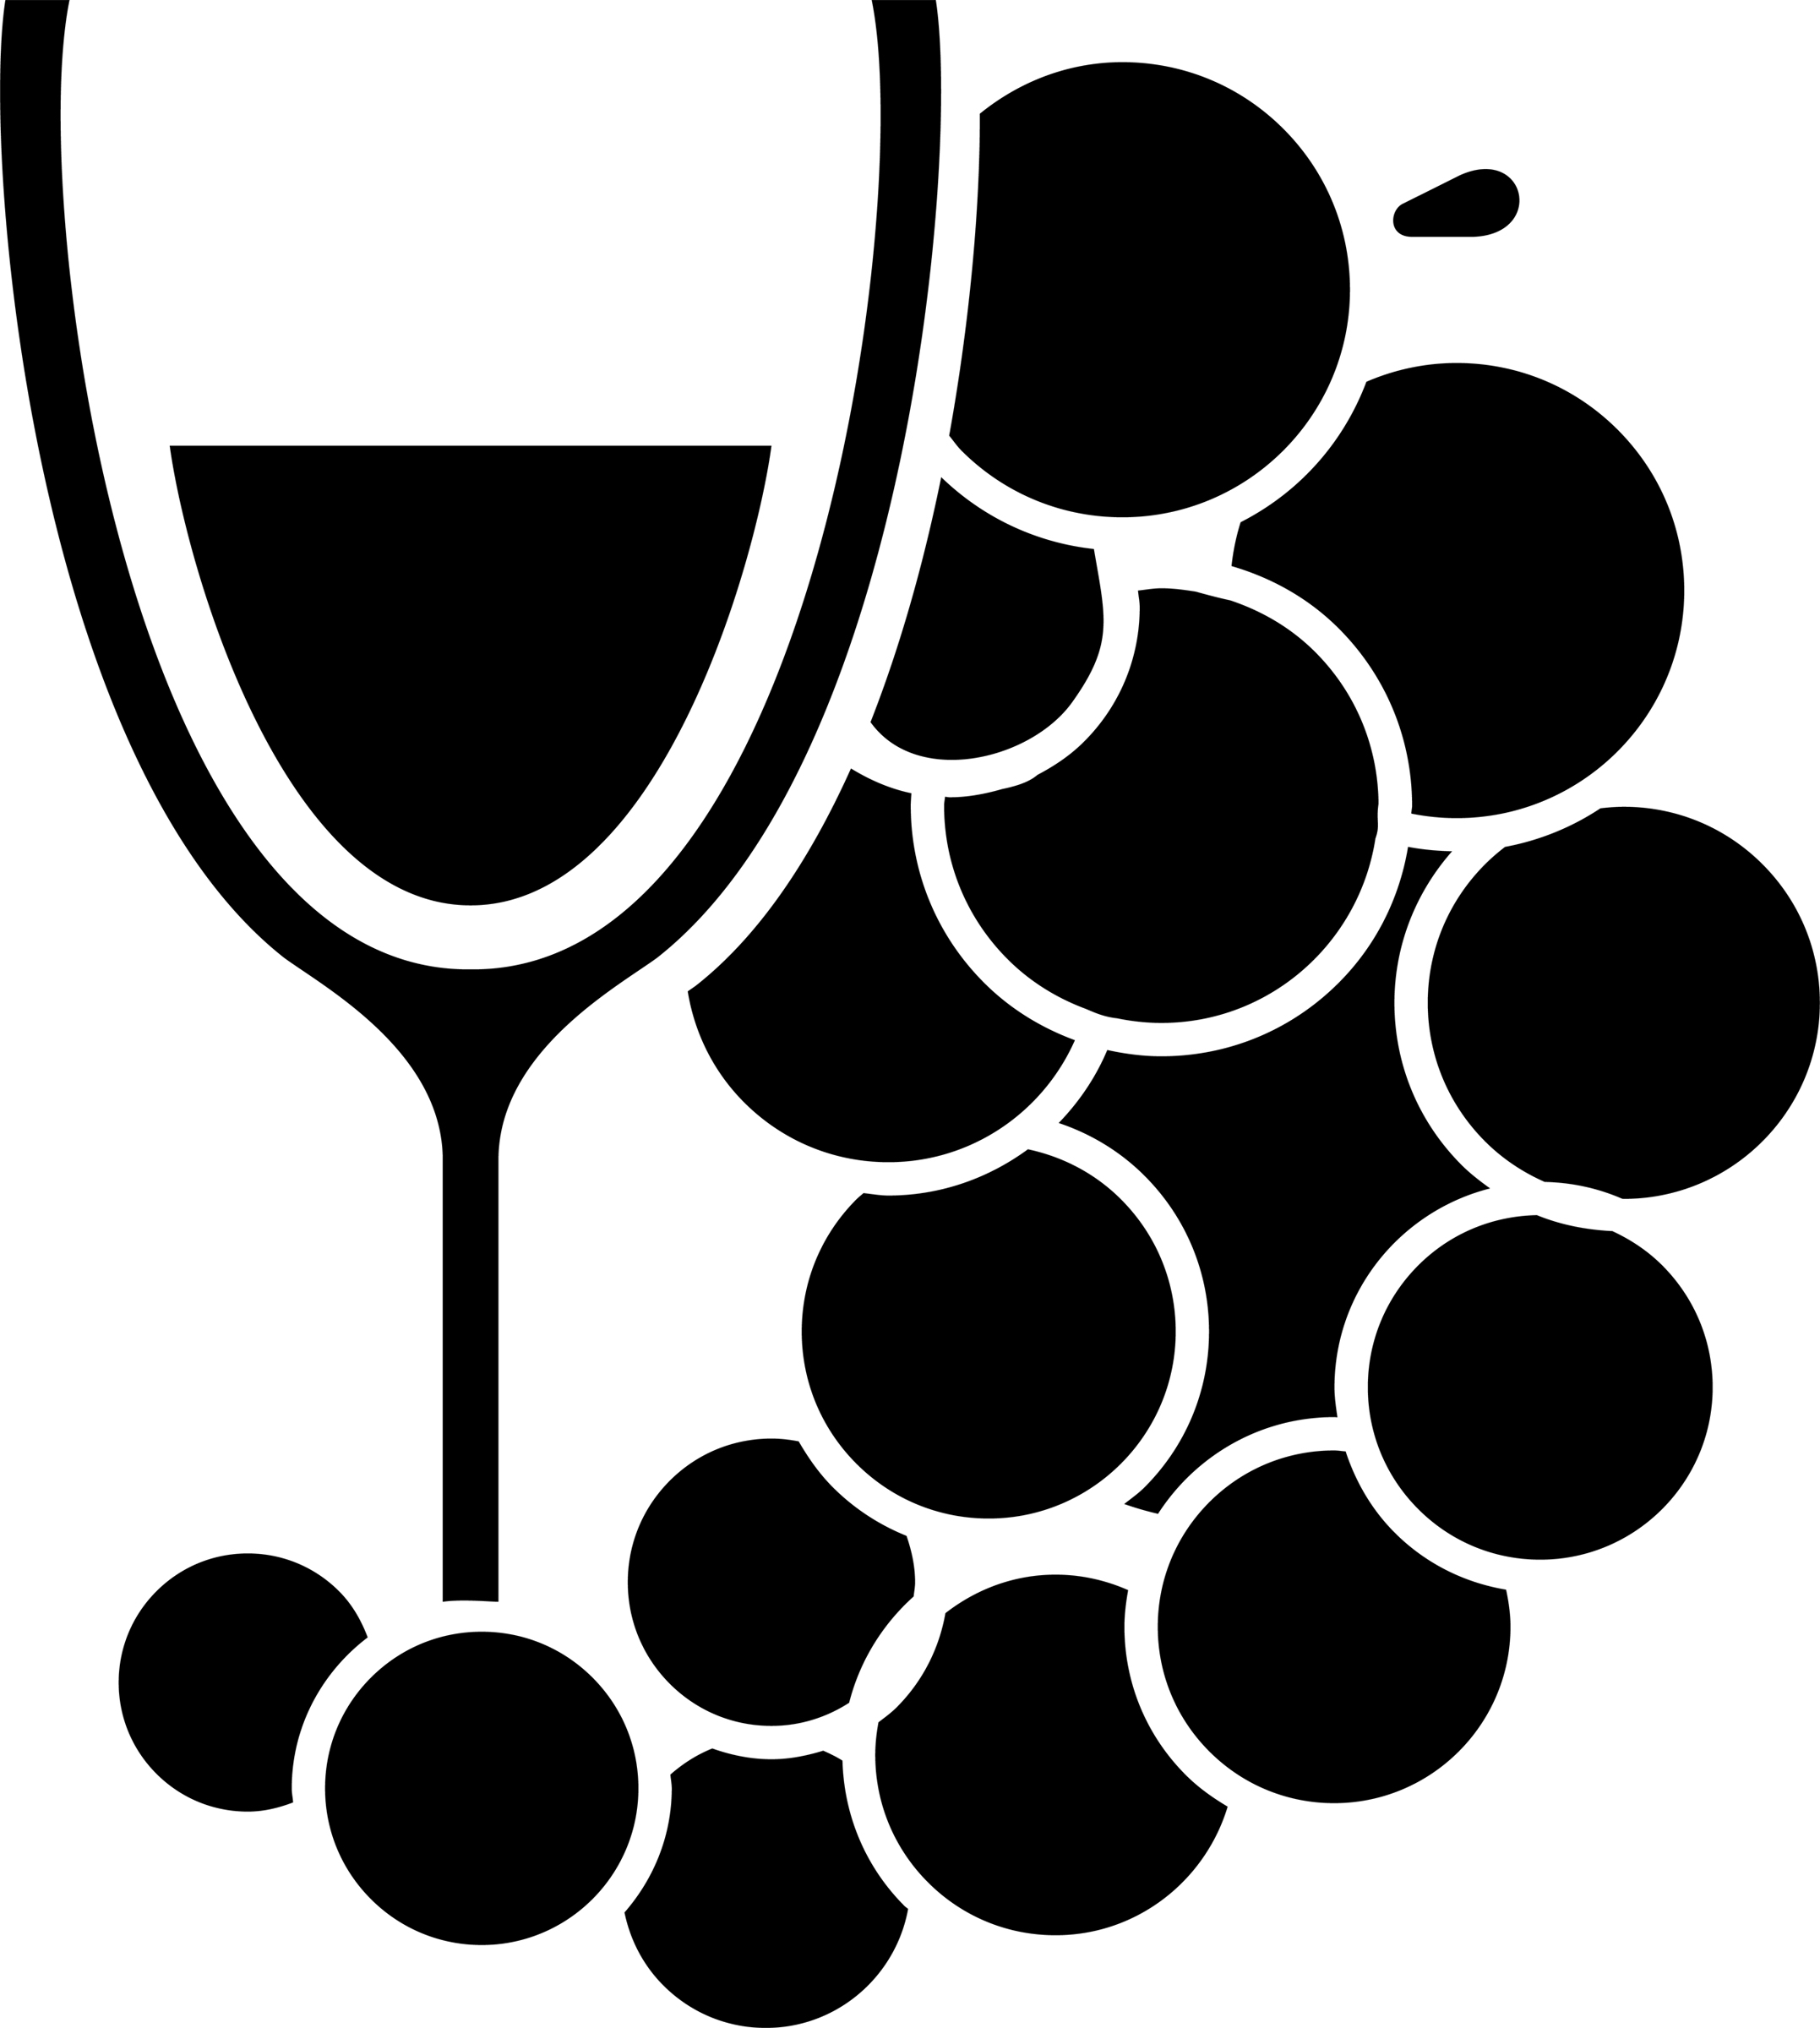 Wine slipper clipart banner freeuse library Wine glass wine clipart wineclipart bottle and glass clip art 3 ... banner freeuse library